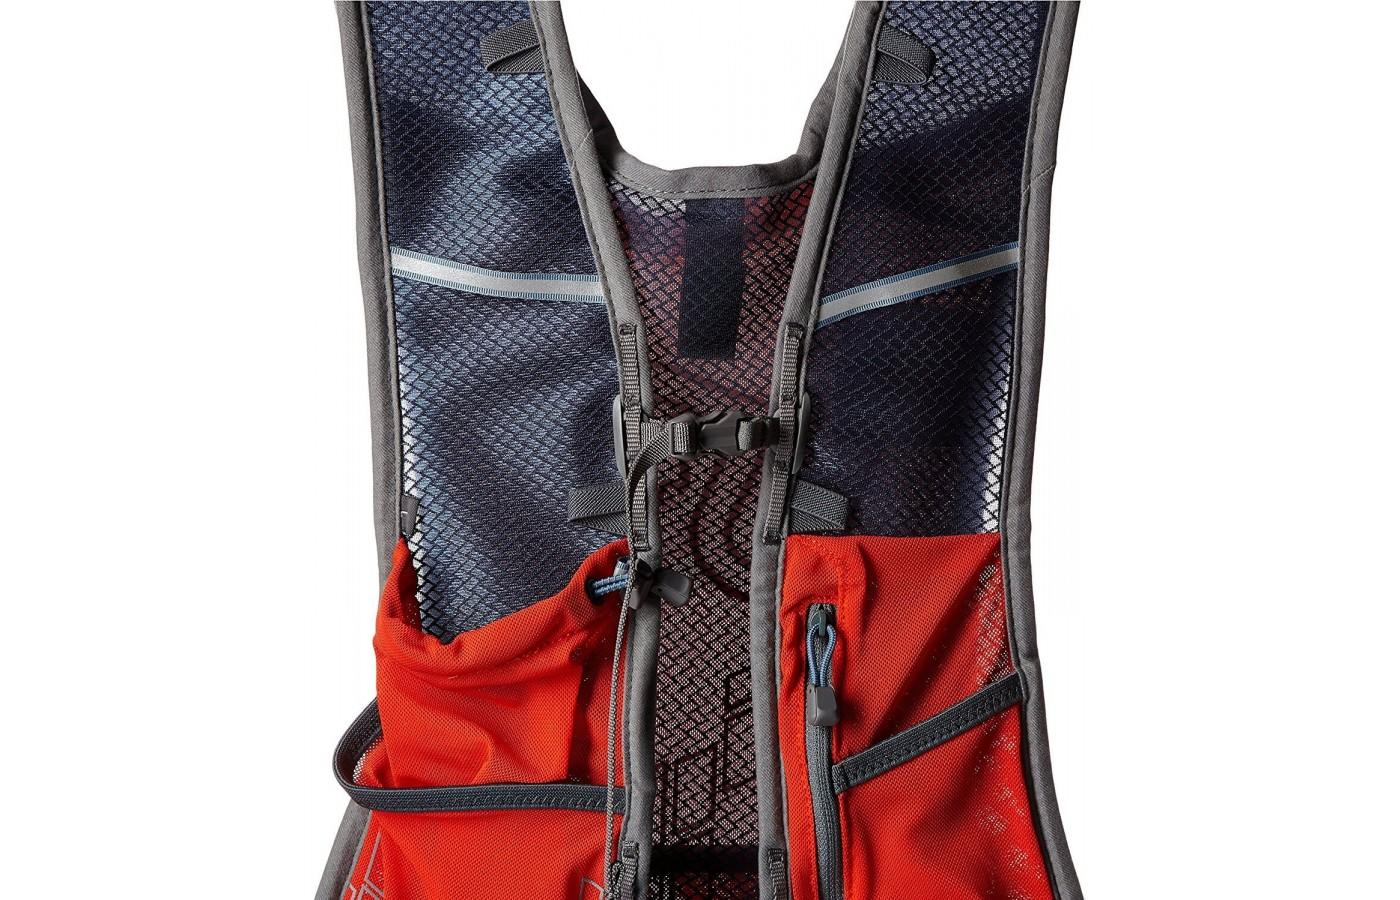 The vest comes in three sizes and has adjustable straps to create the perfect fit.